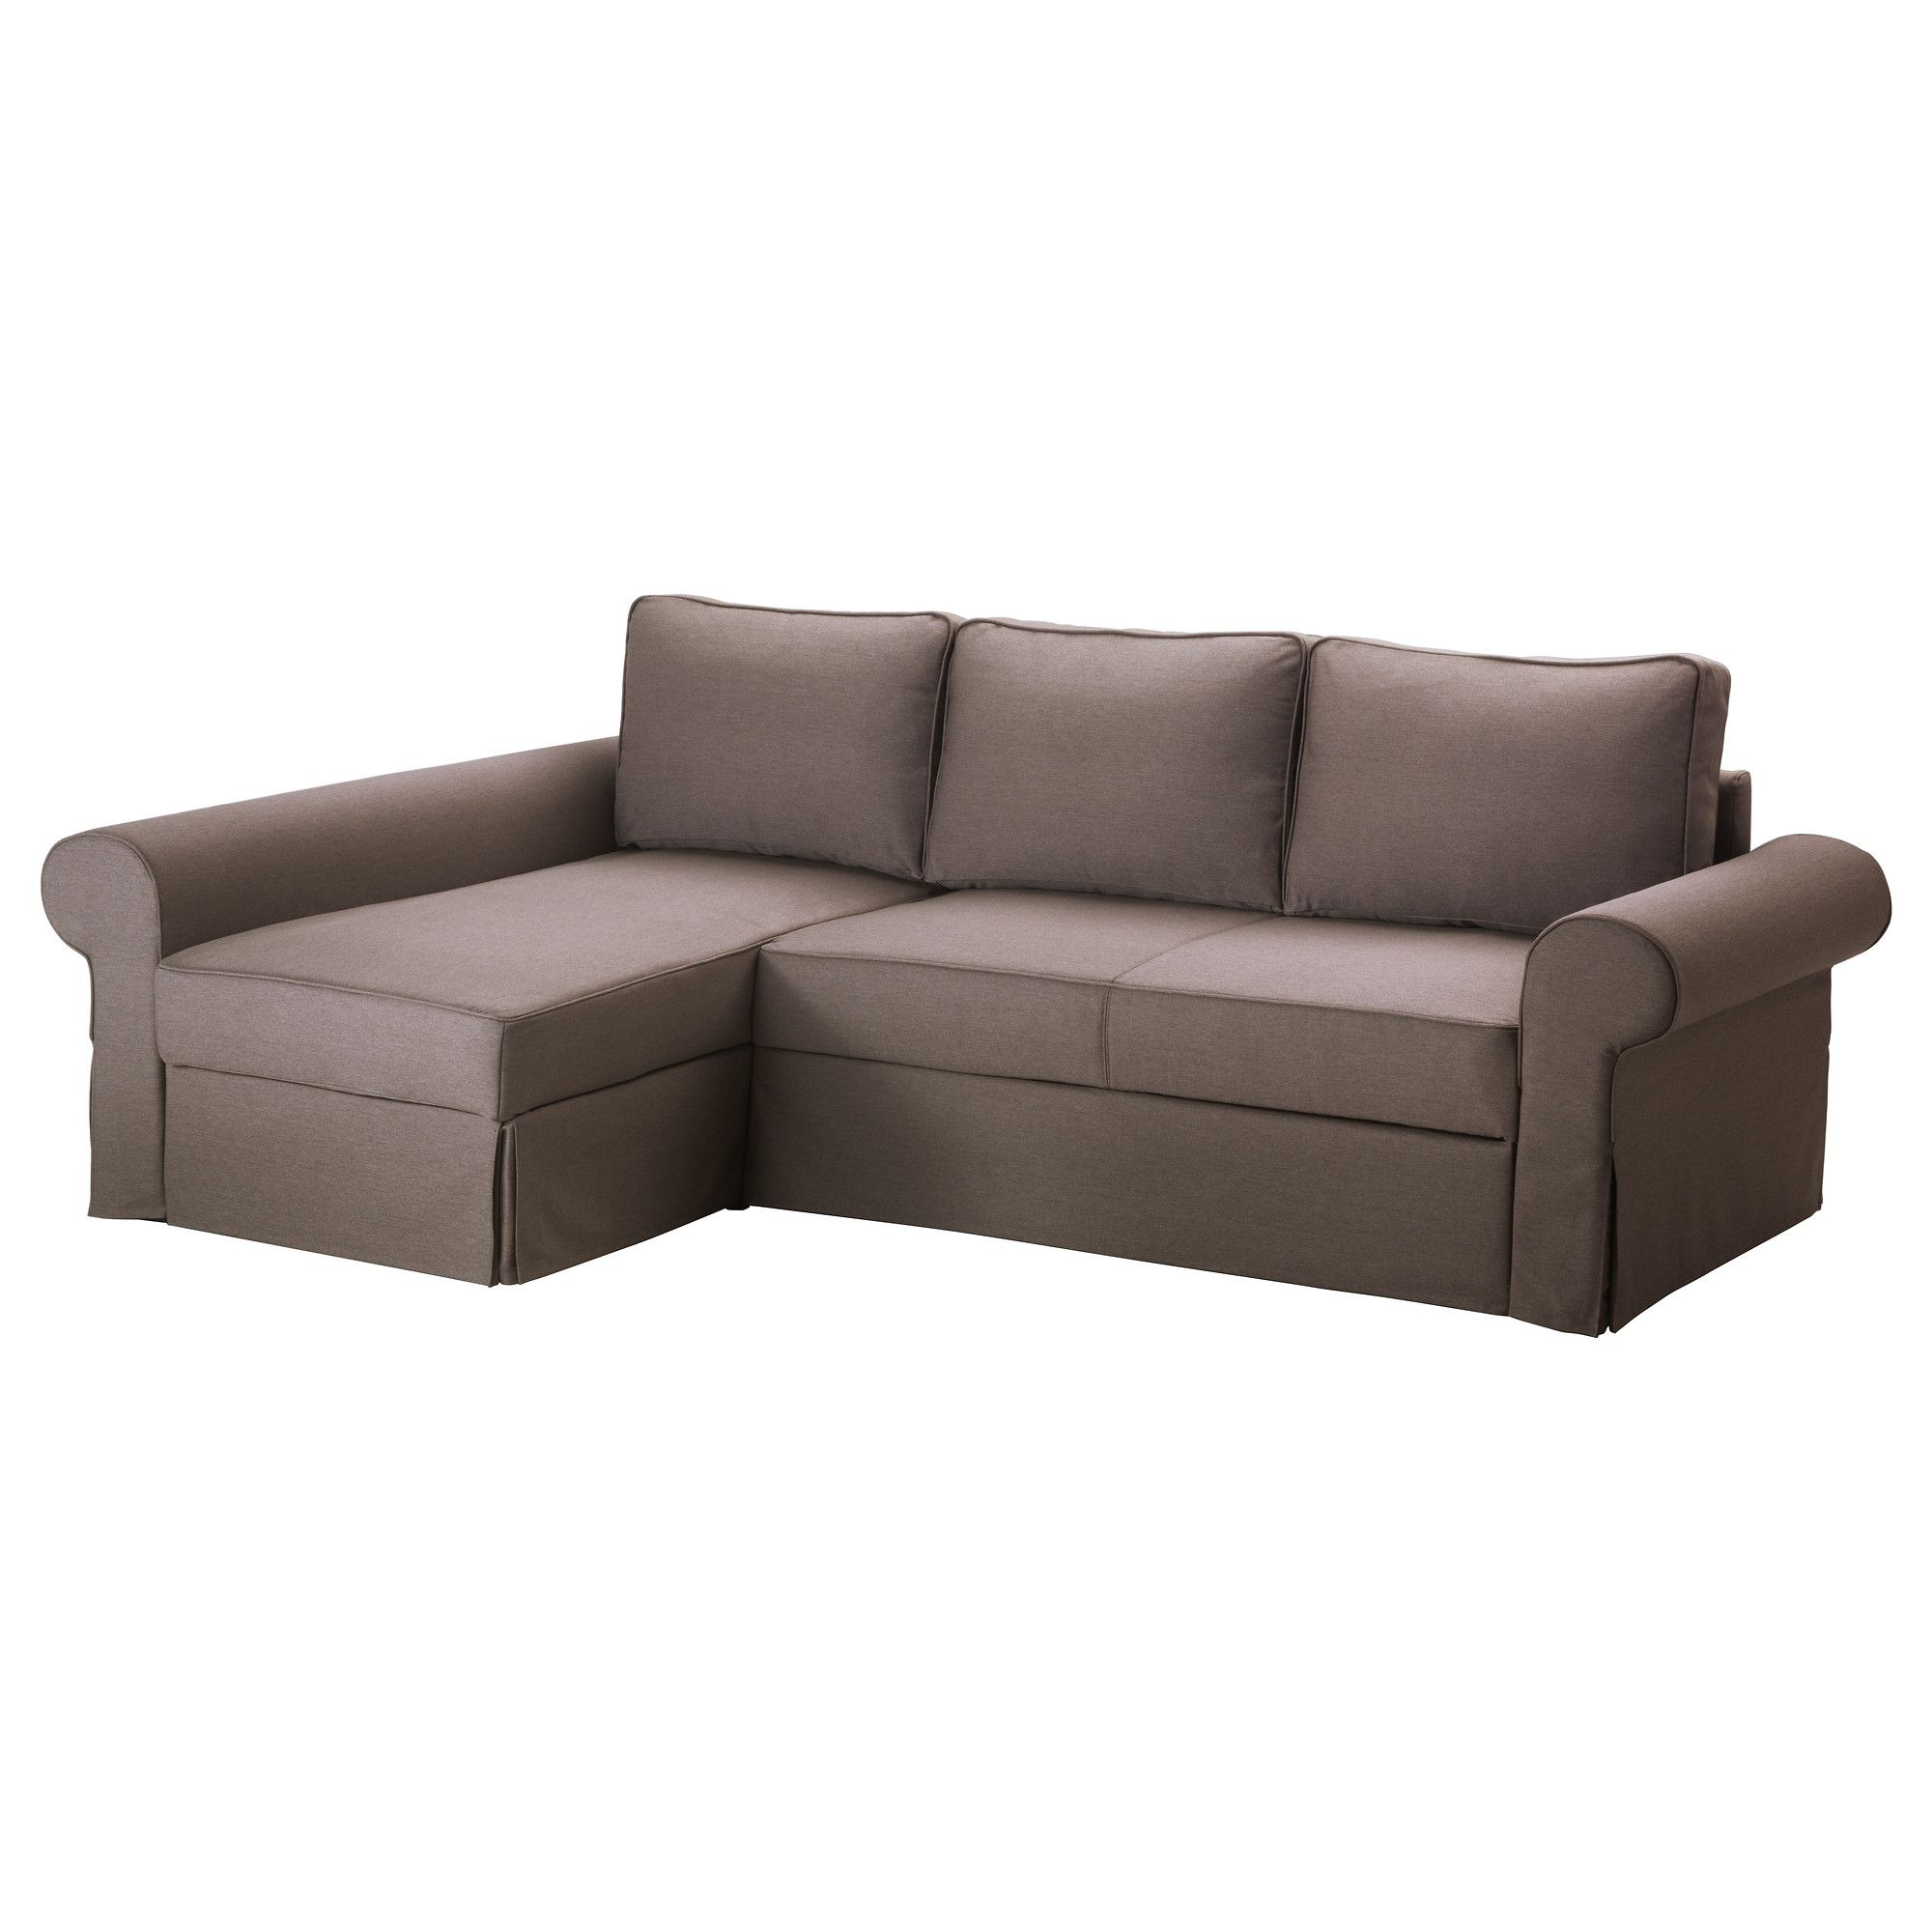 BACKABRO/MATTARP Sofa bed with chaise lounge - Jonsboda ...